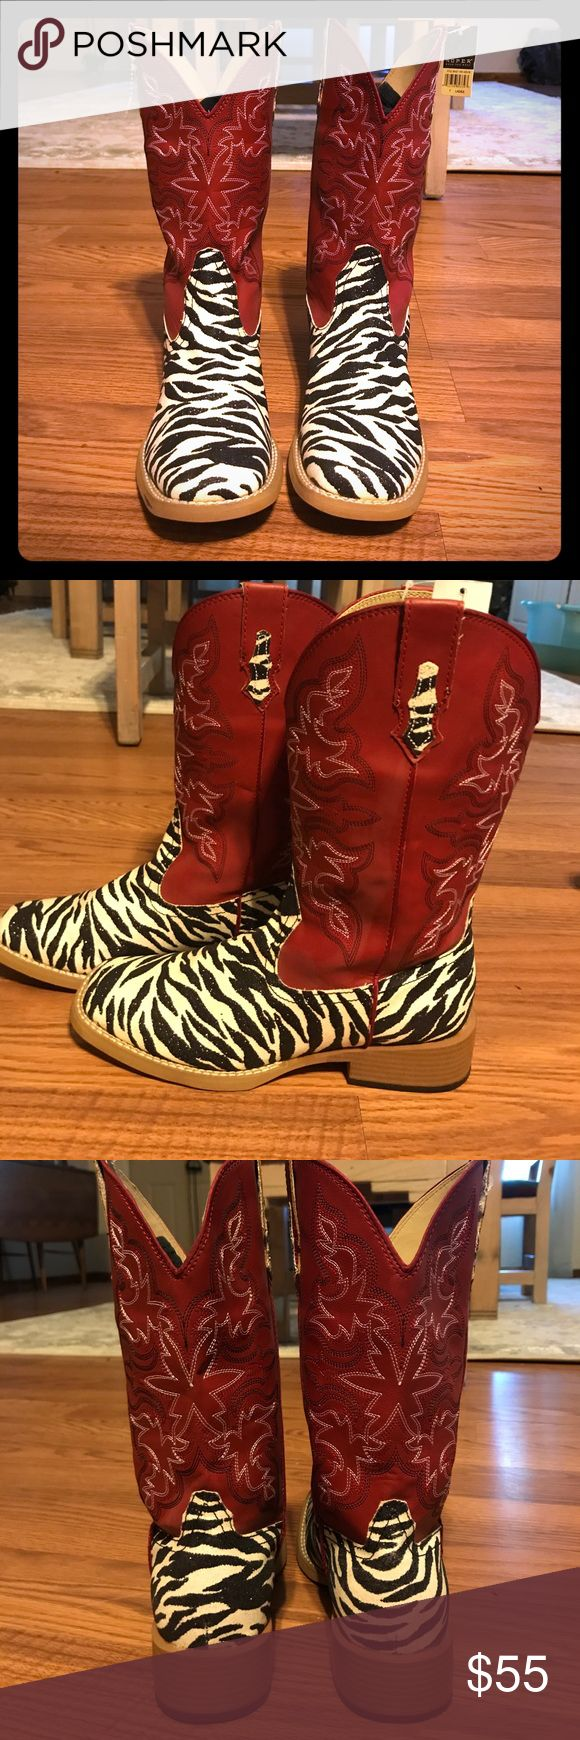 Roper cowboy boots (women's) Brand new Roper cowboy boots! Red and zebra print. Never worn, brand new with tags. Perfect condition! Size 7 Roper Shoes Heeled Boots